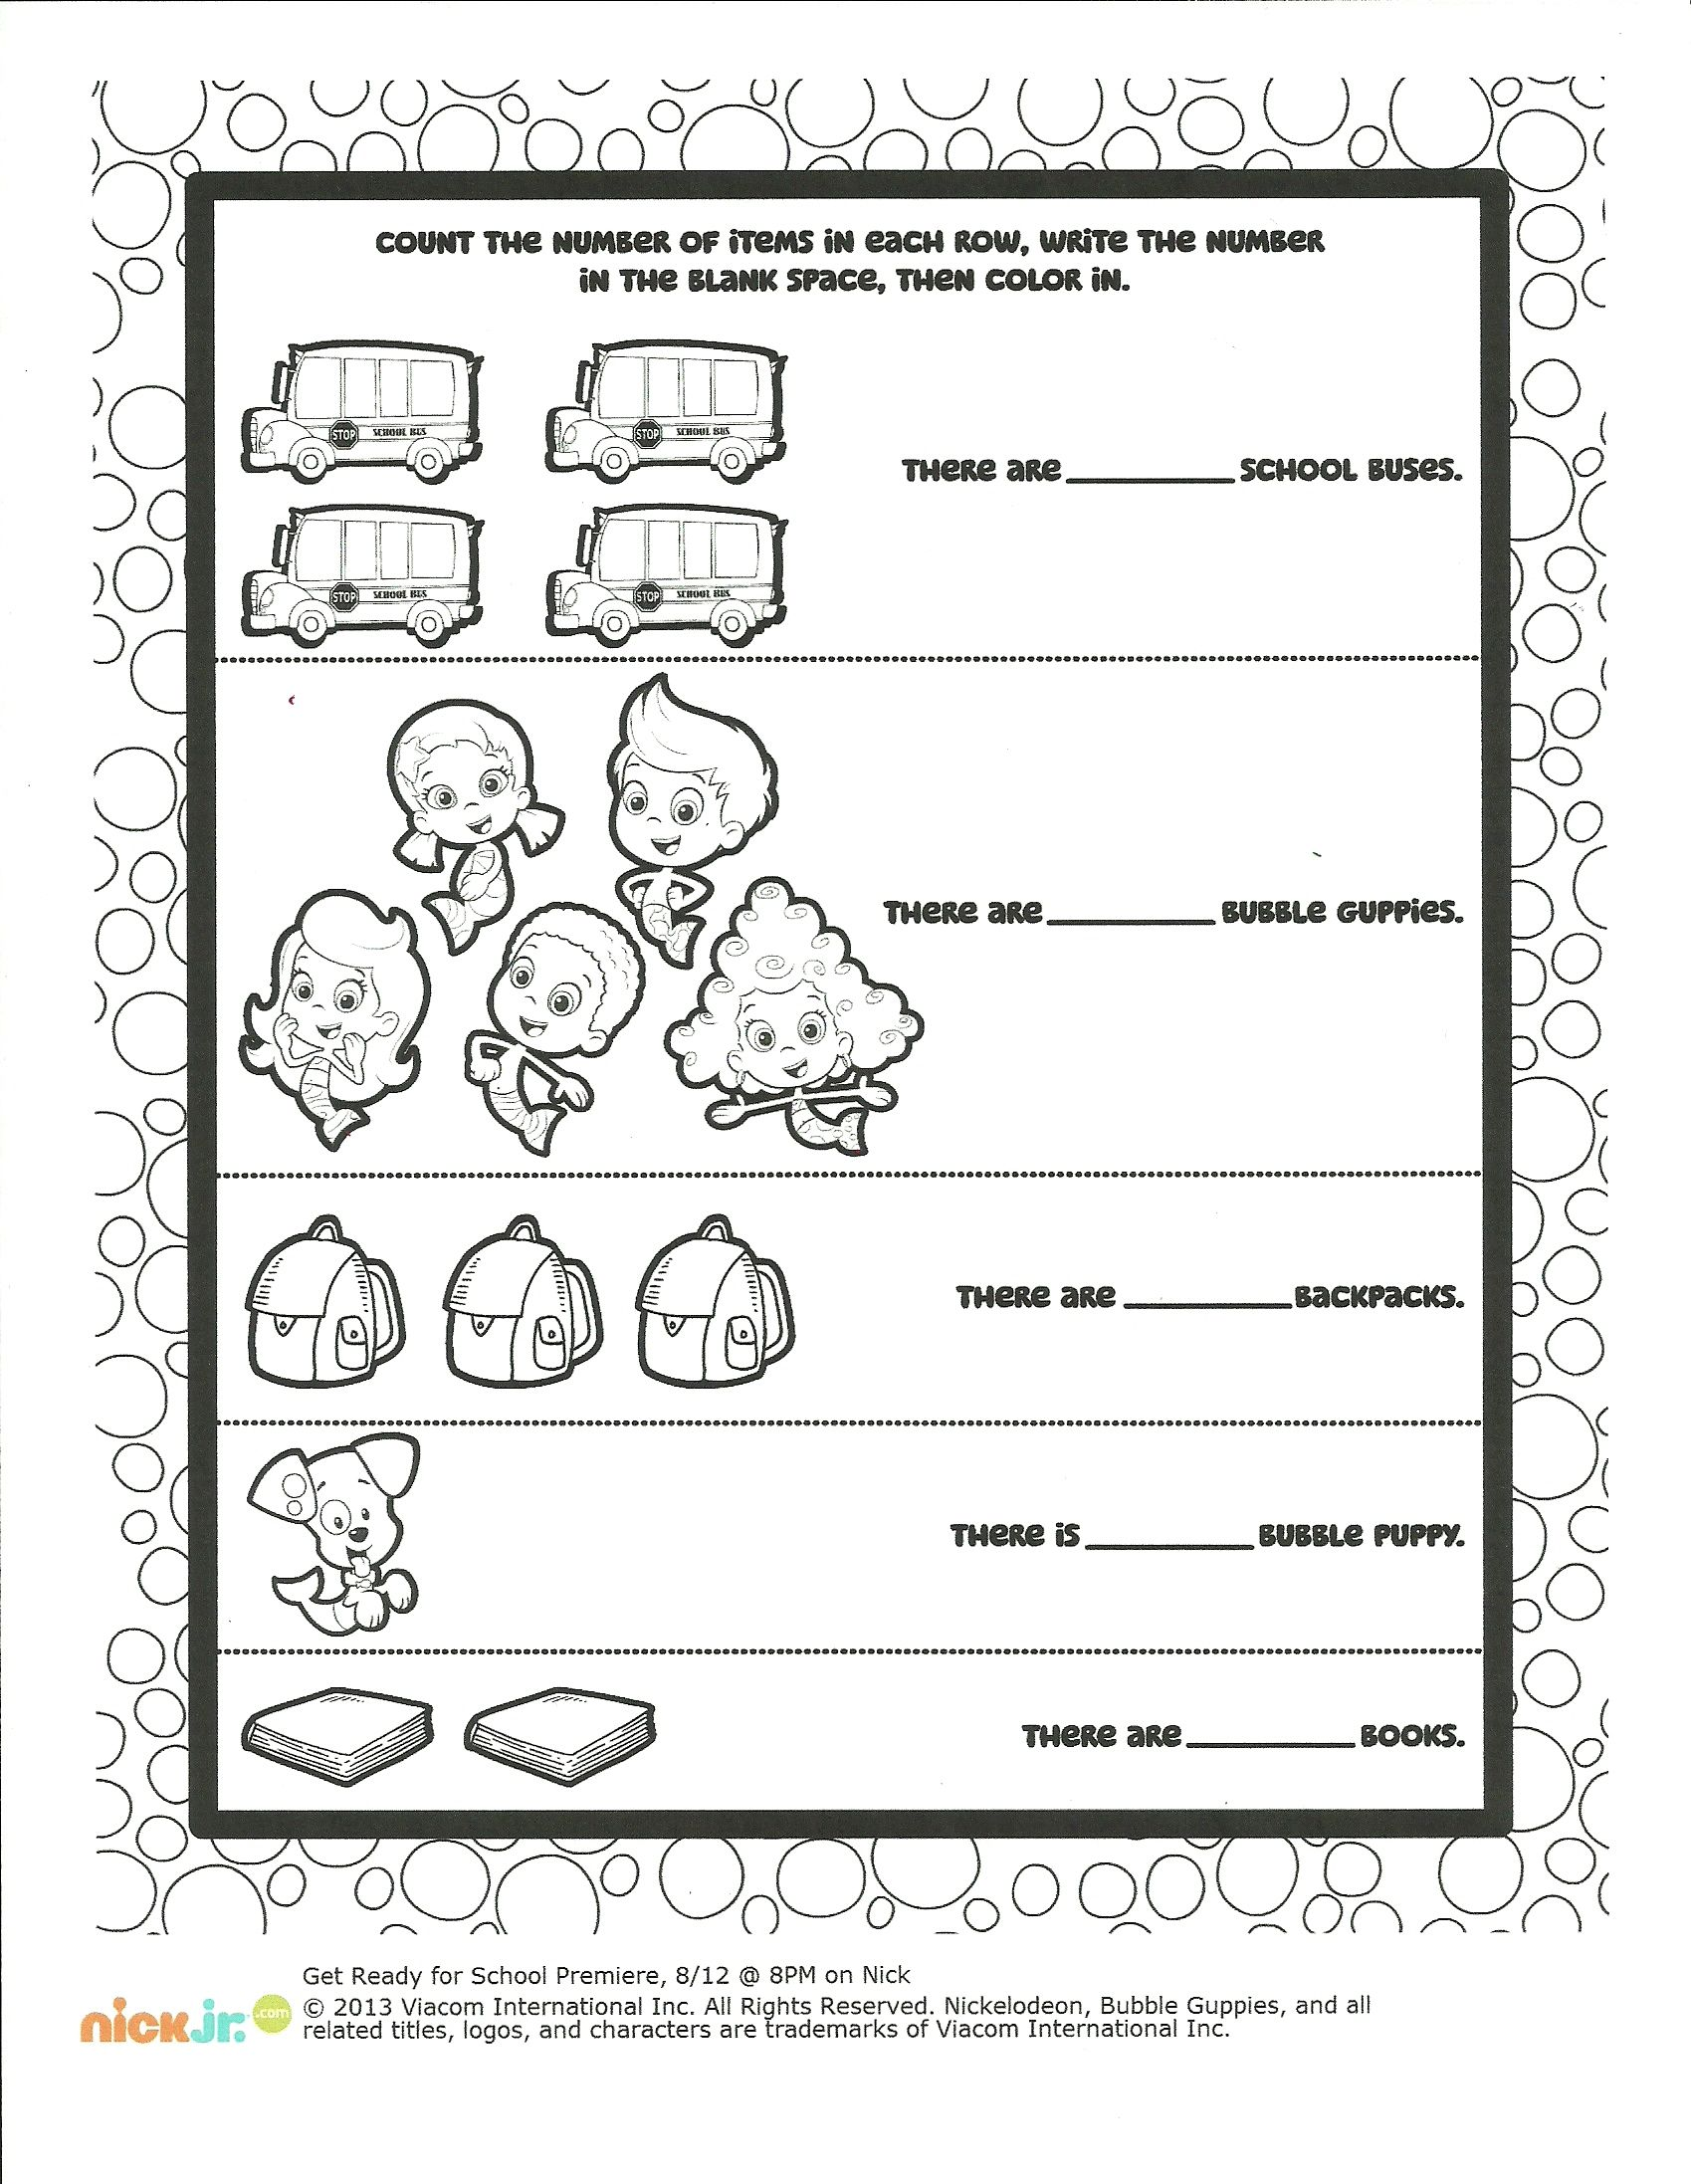 Bubble Guppies Color and Count Worksheet | Elizabeth\'s bday | Pinterest